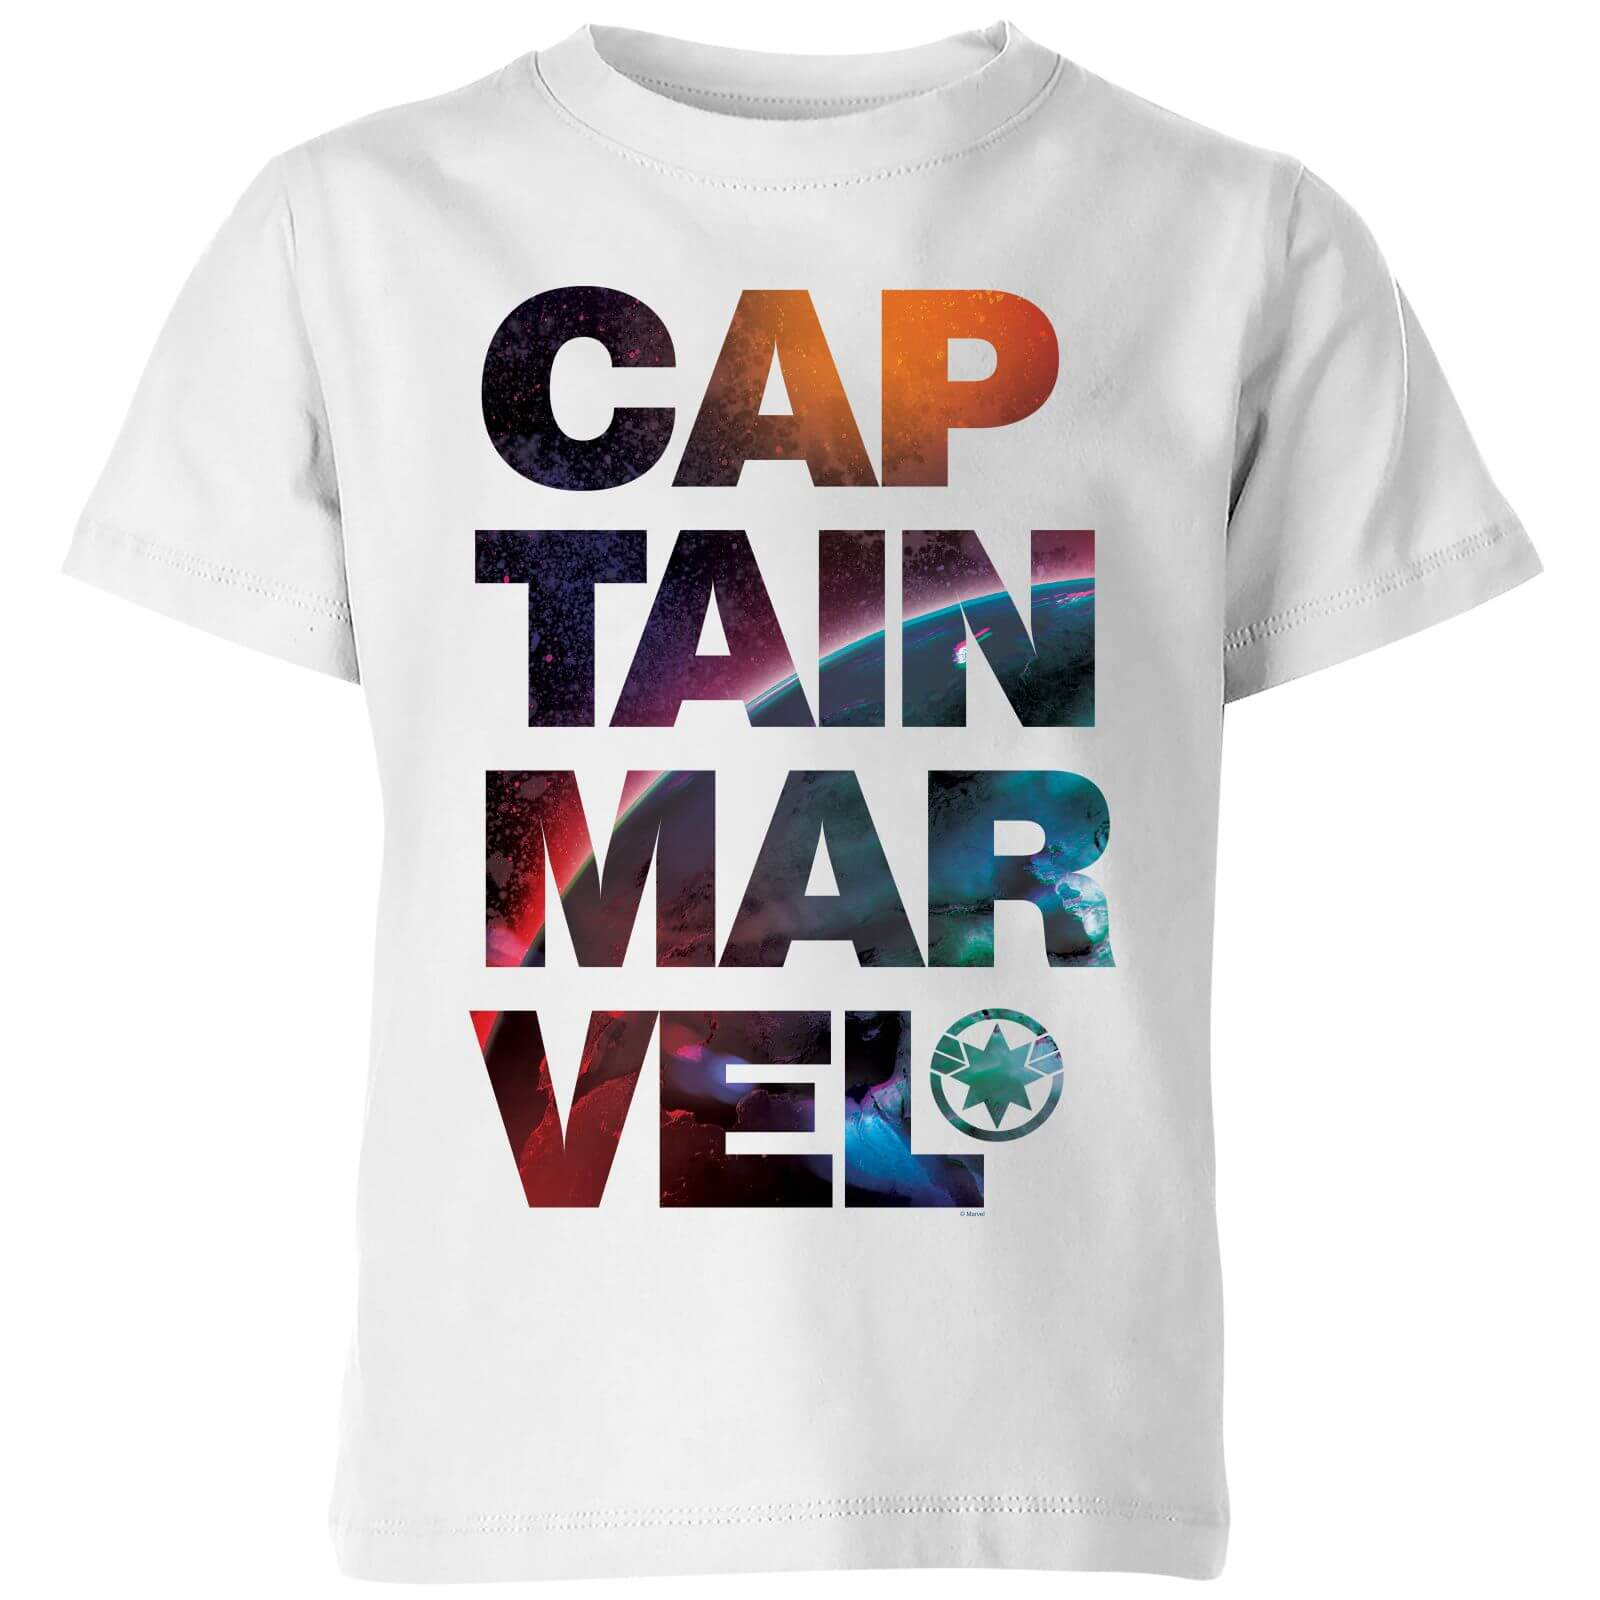 959f4d52a4f0 Captain Marvel Space Text Kids' T-Shirt - White | IWOOT